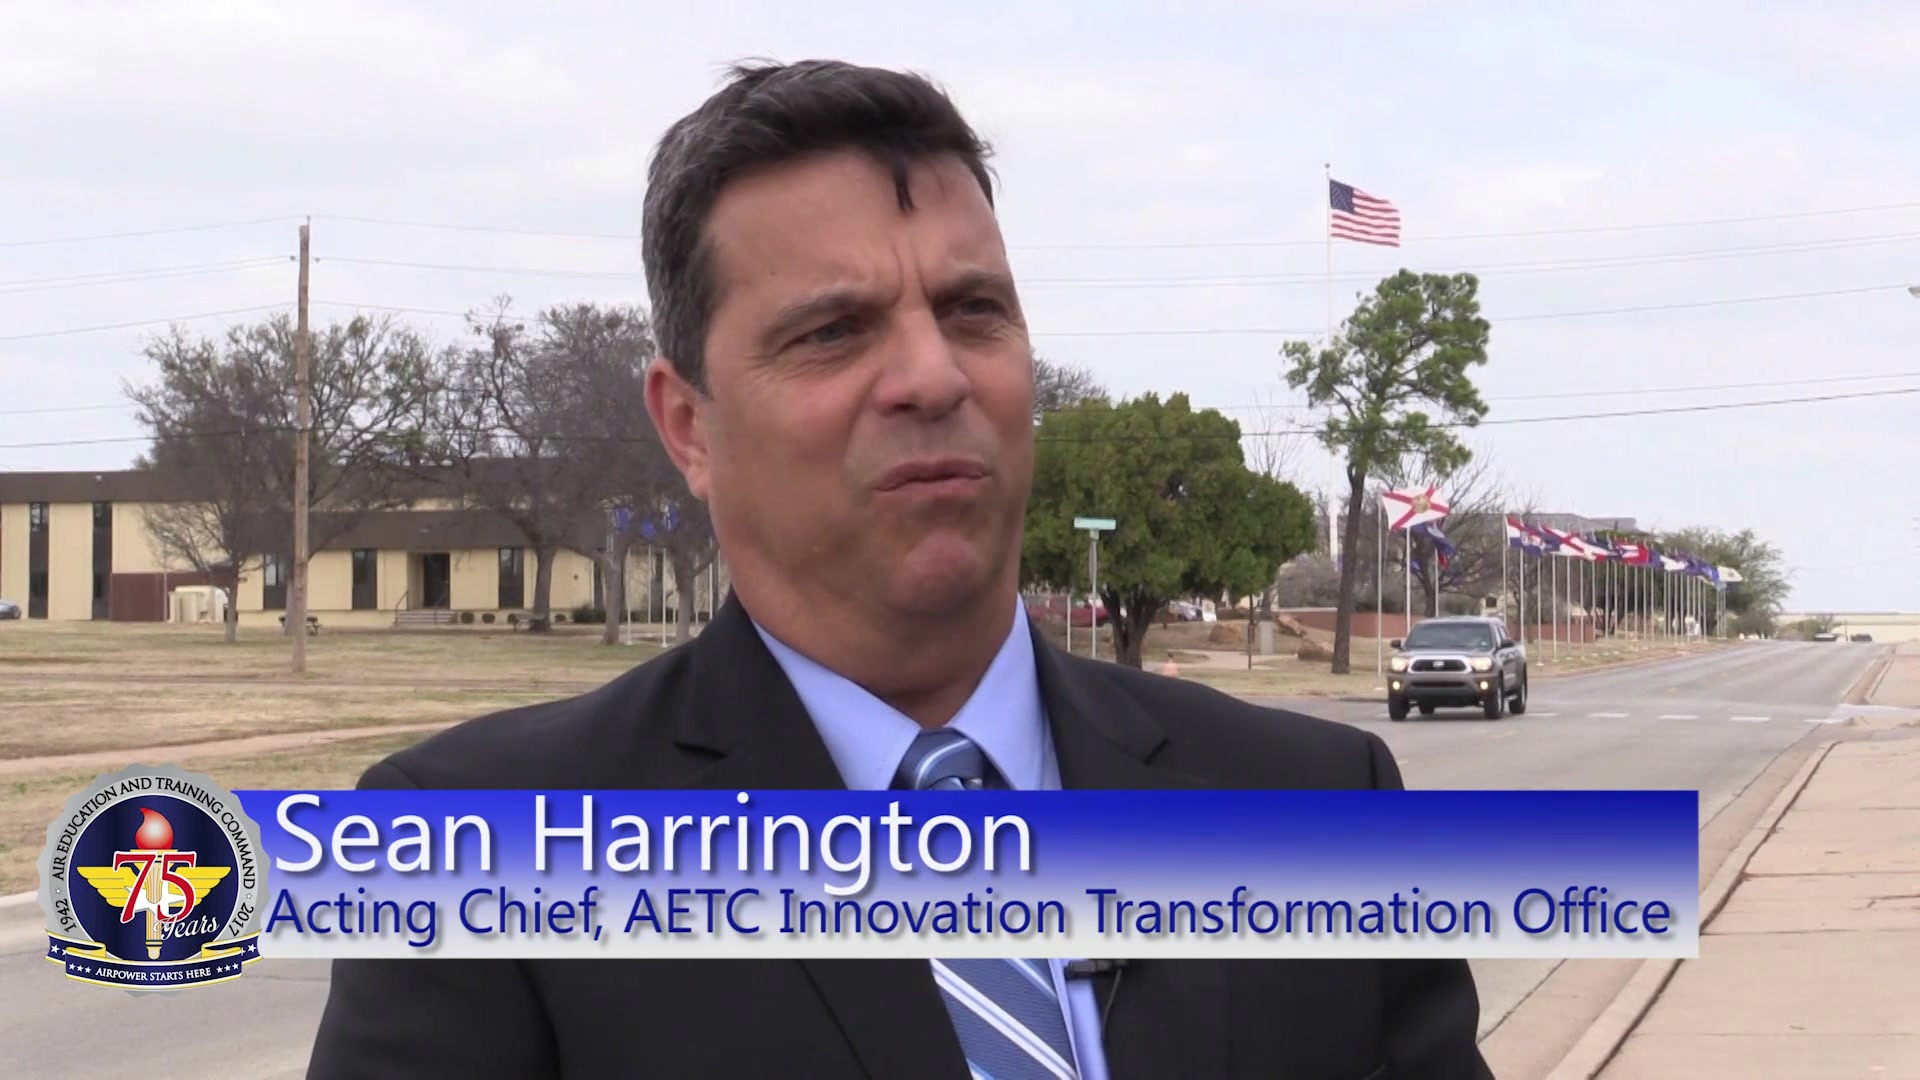 AETC Innovation Challenge Award winners are announced at the 2017 Senior Leader Conference at Sheppard Air Force Base.